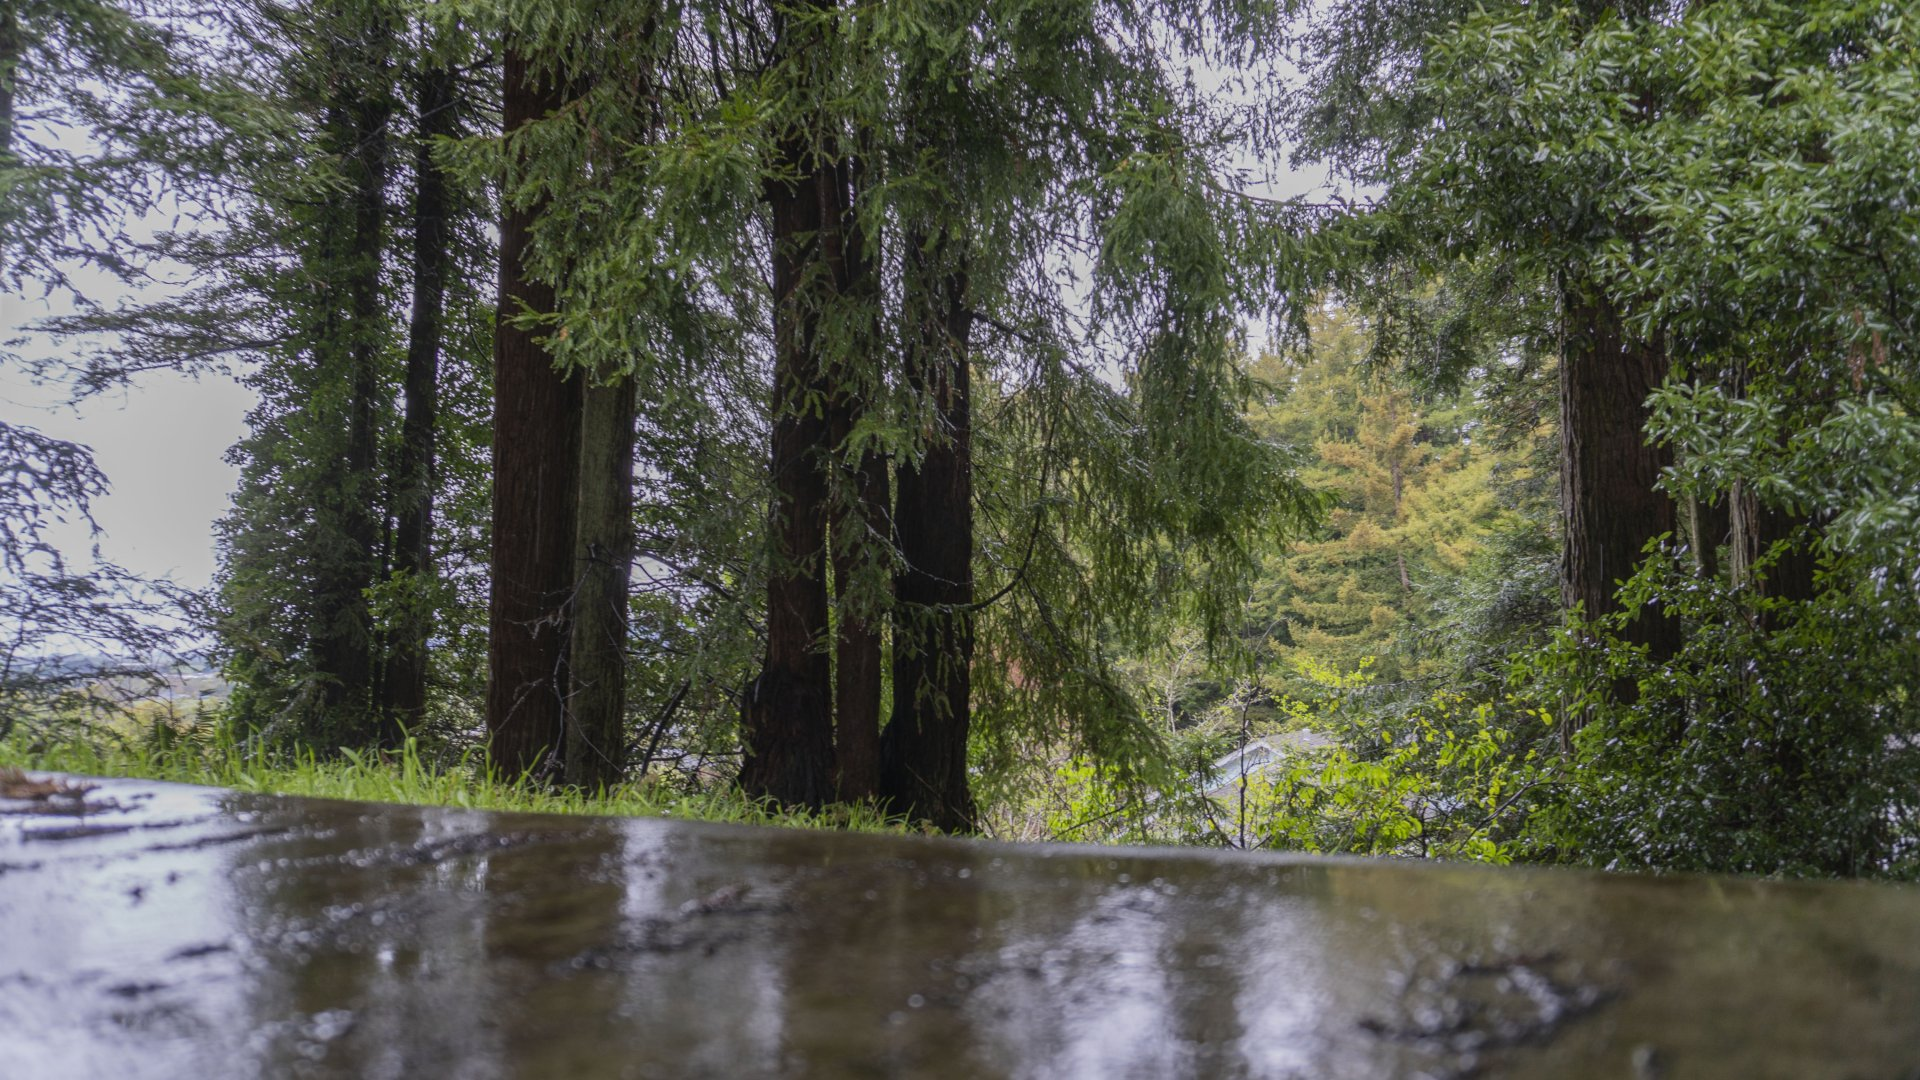 Rain falling among redwood trees in Arcata, California on the morning of April 4. A rainstorm is expected to drop a couple inches of rain on Arcata this weekend. | Photo by James Wilde